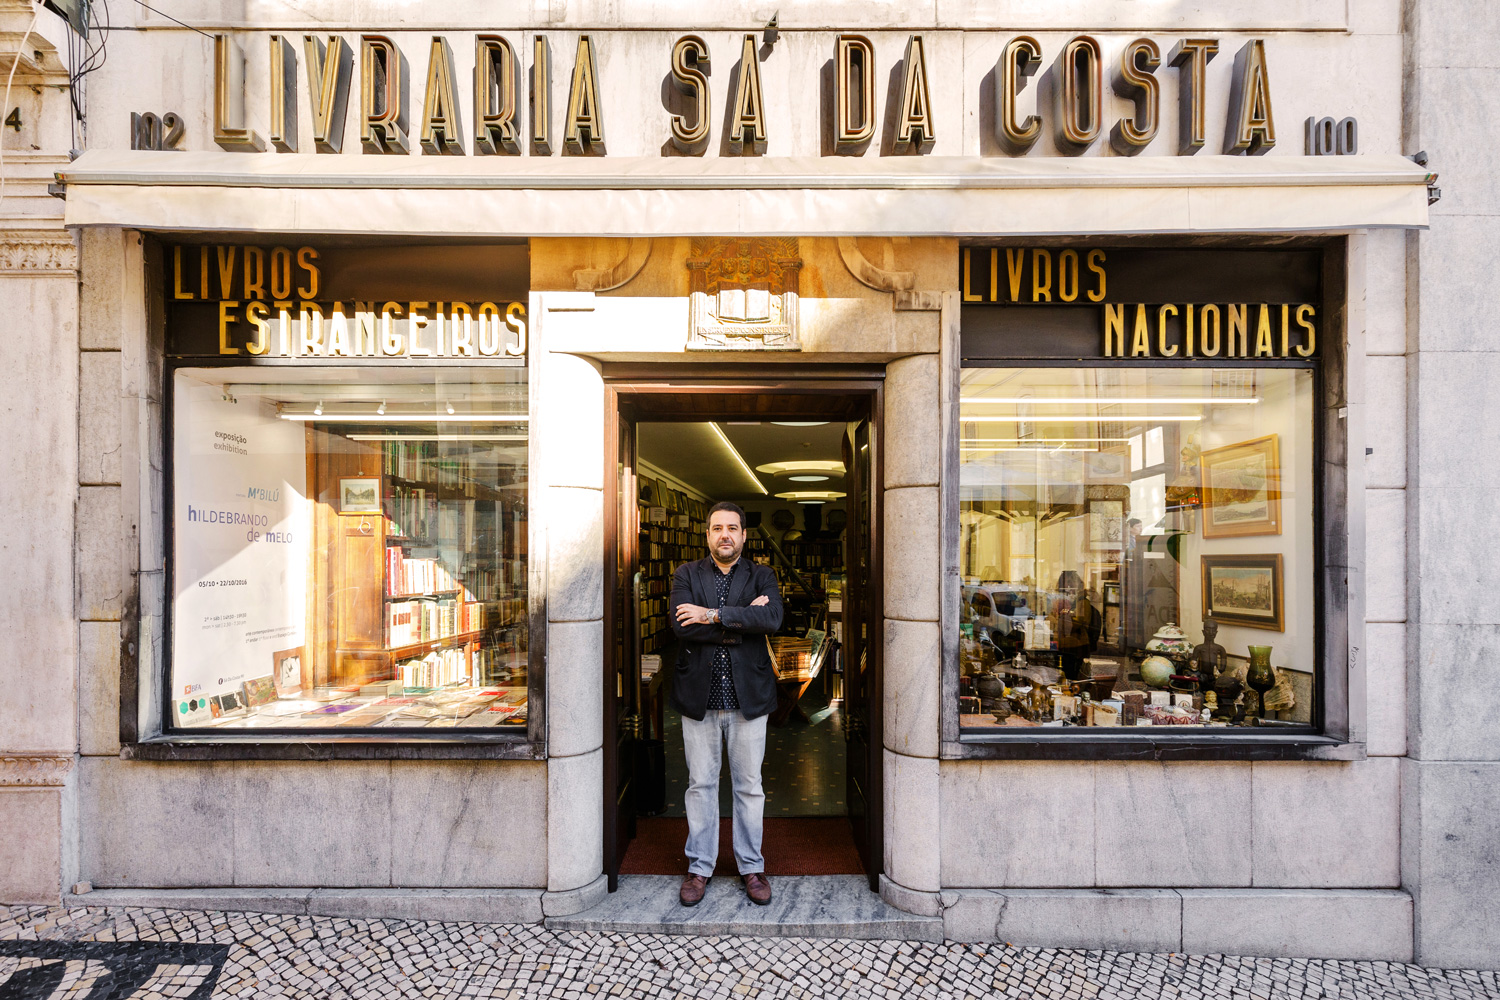 Manager Pedro Castro e Silva poses in front of his bookshop